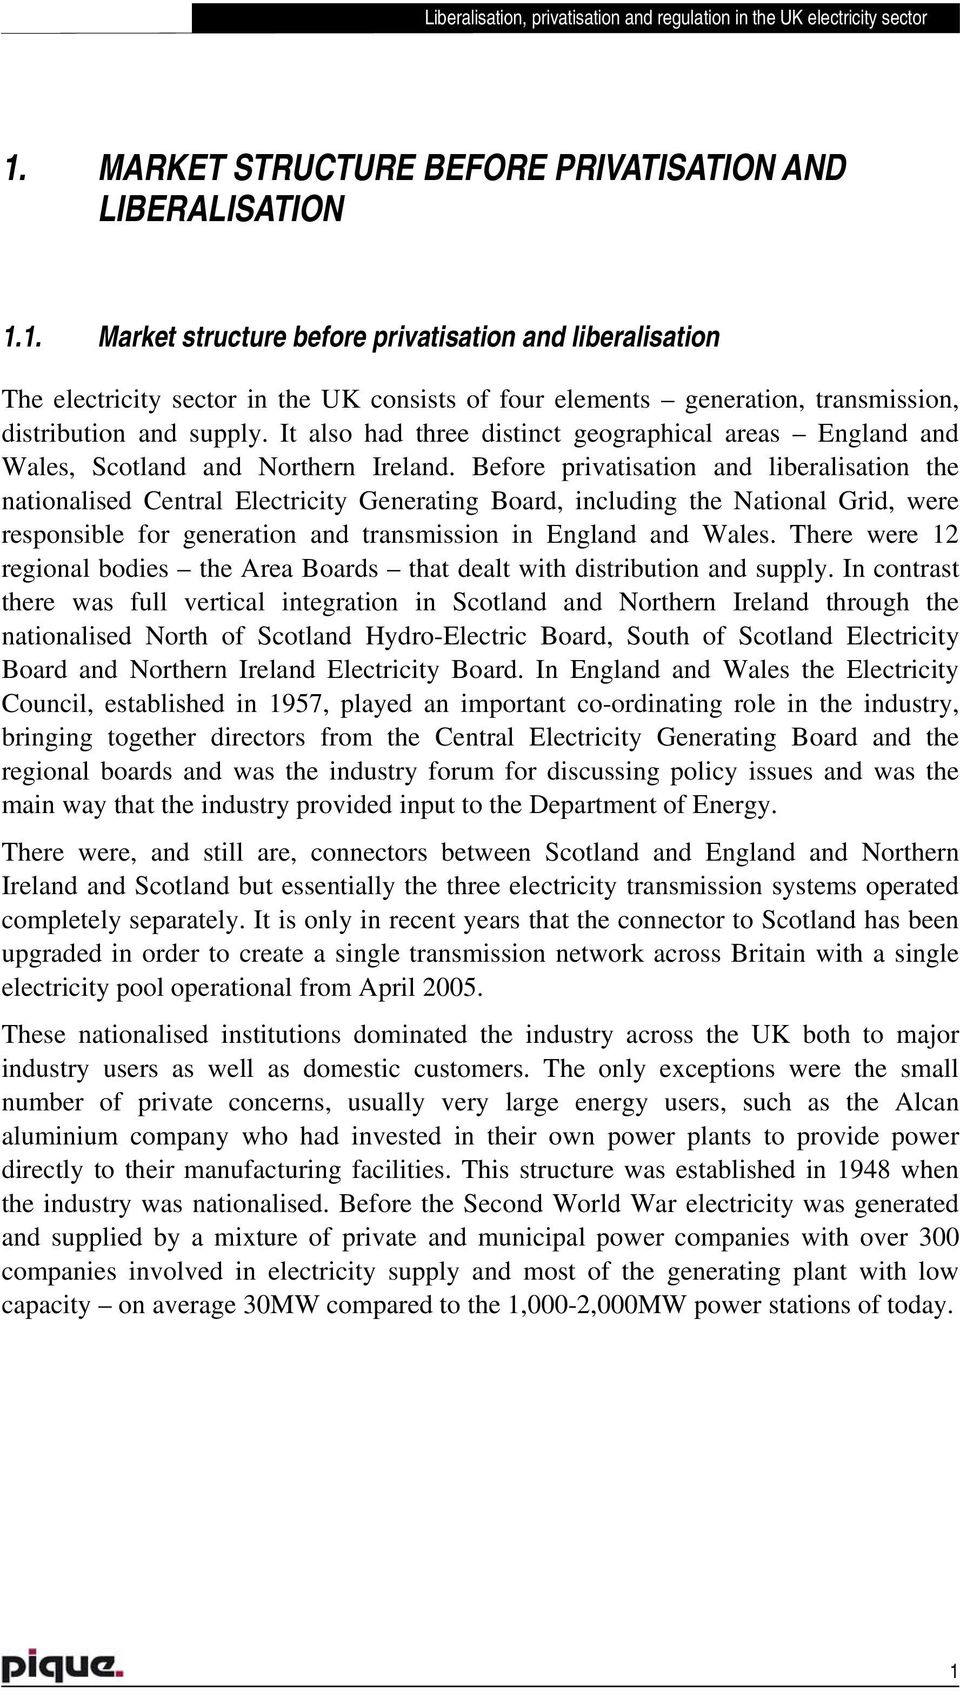 Before privatisation and liberalisation the nationalised Central Electricity Generating Board, including the National Grid, were responsible for generation and transmission in England and Wales.